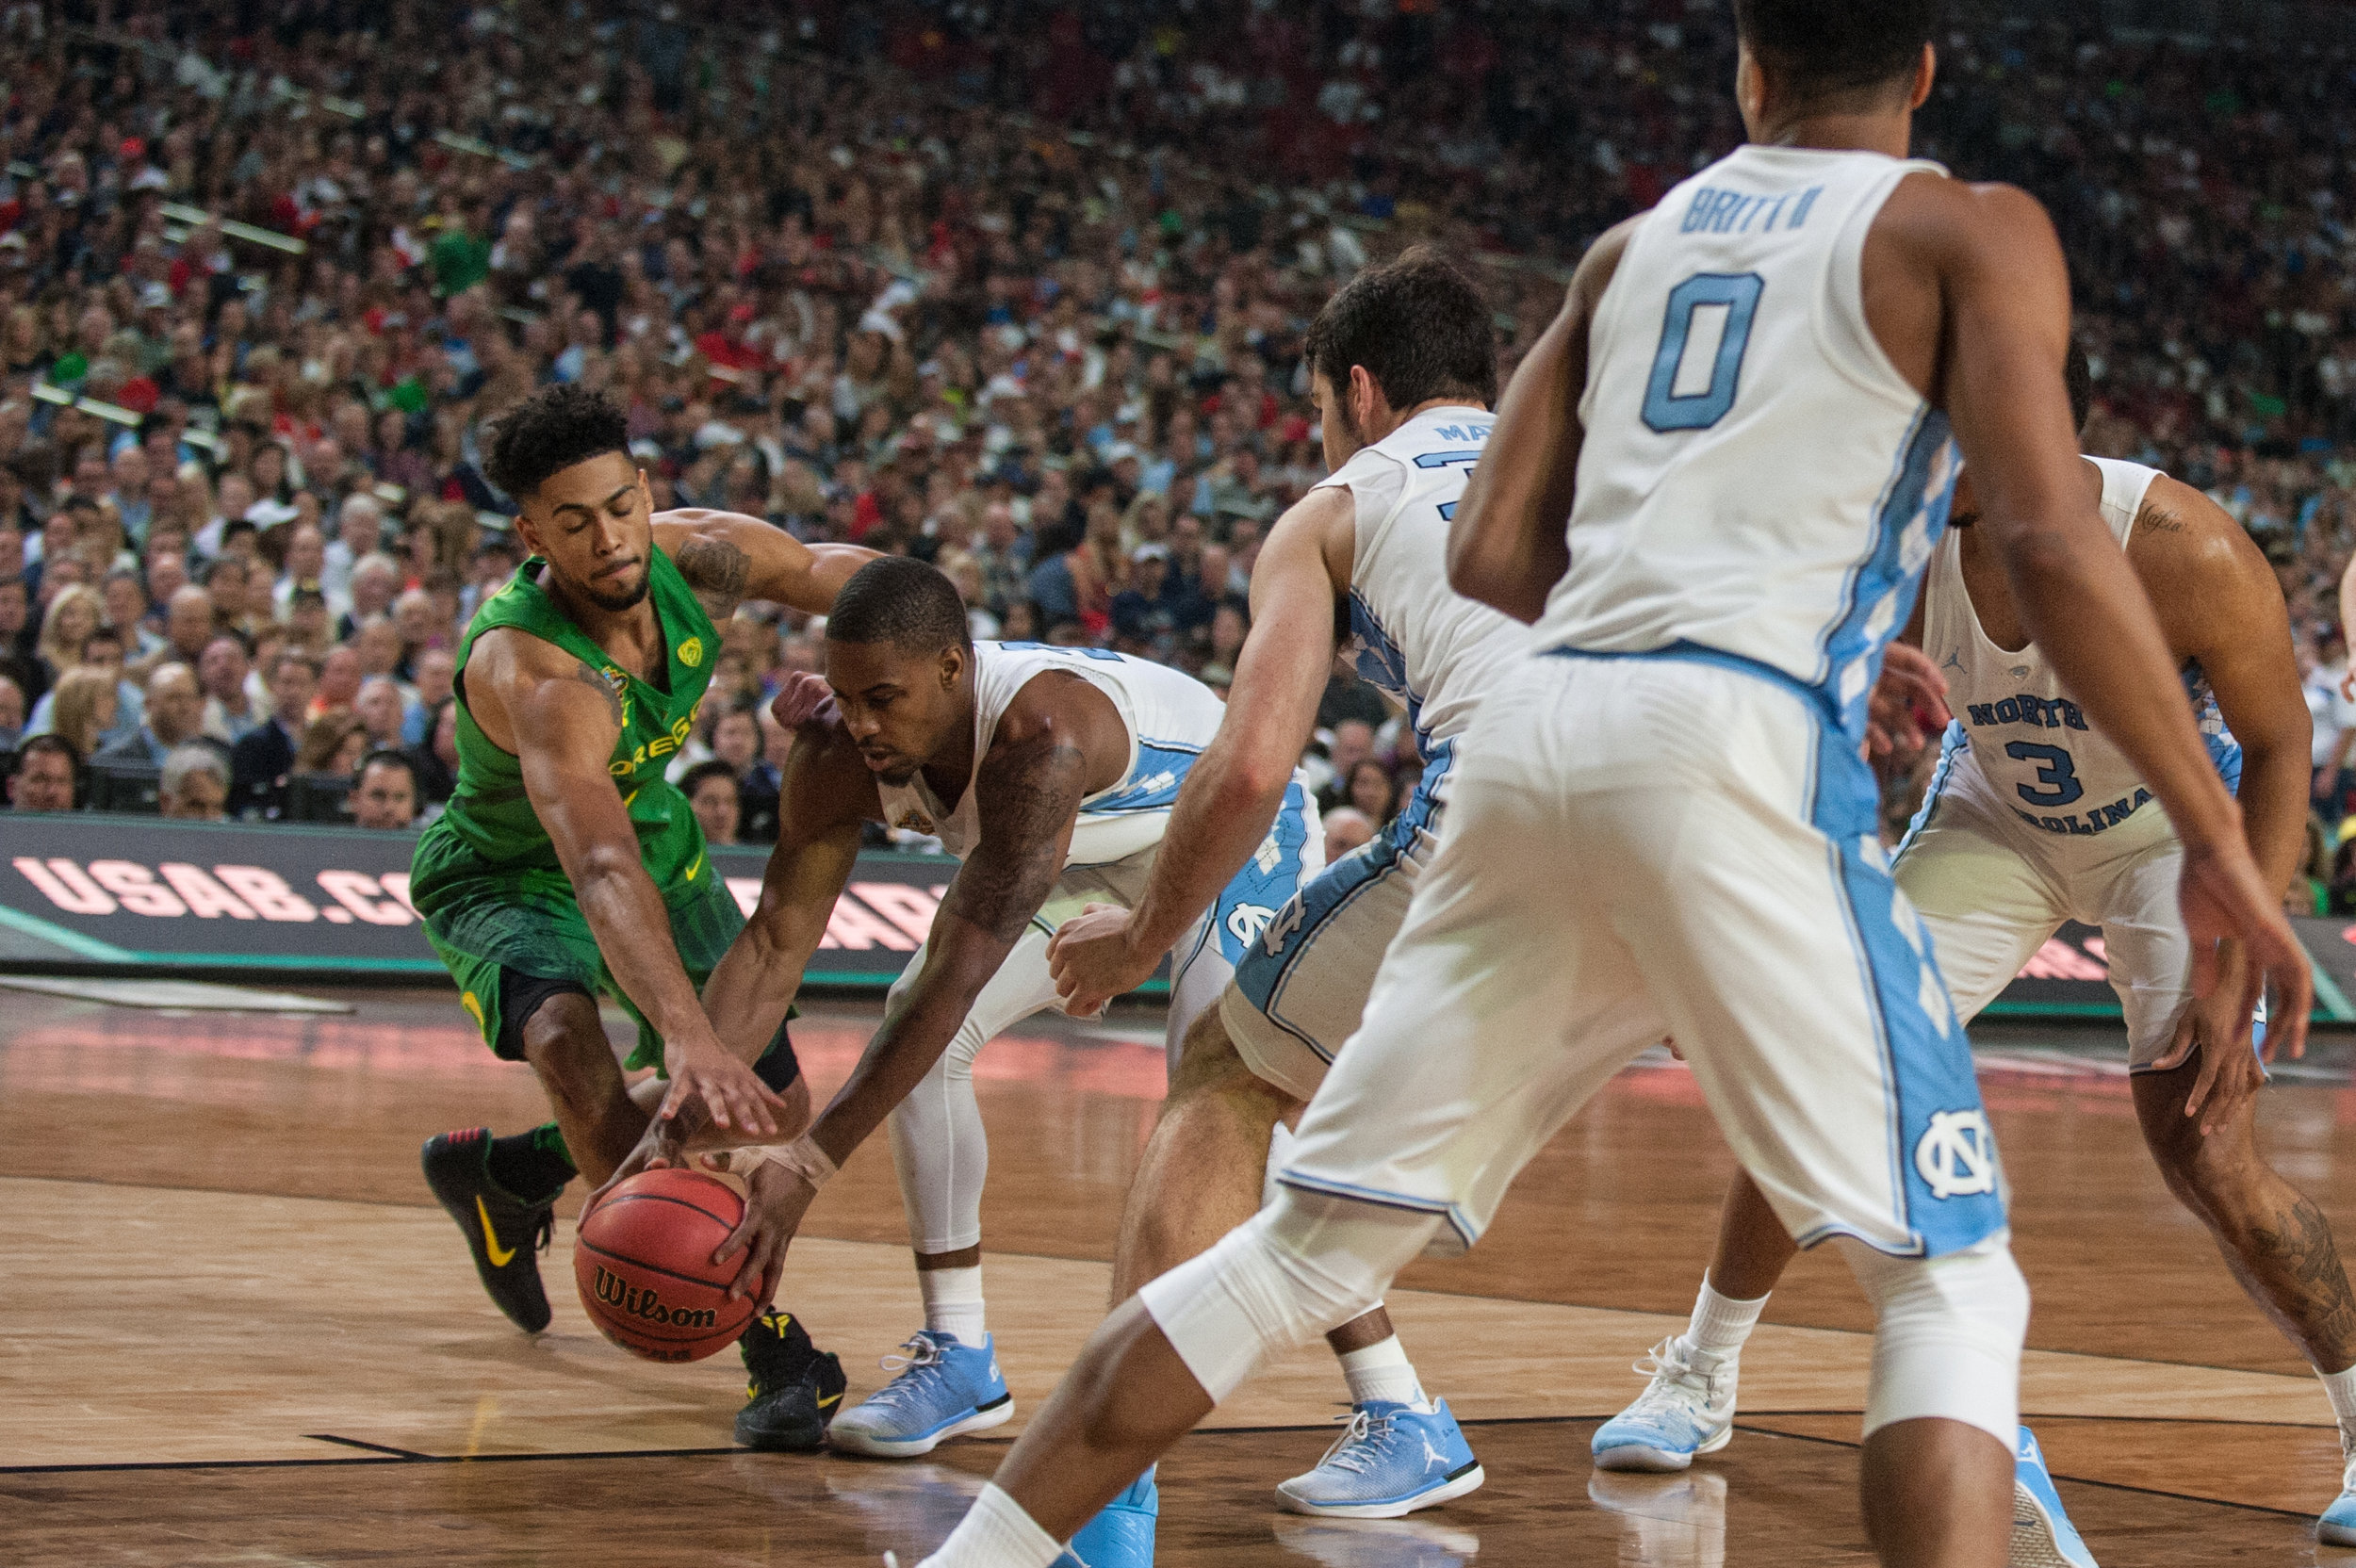 17.03.31.emg.an.final.four.oregon.vs.north.carolina-18.jpg